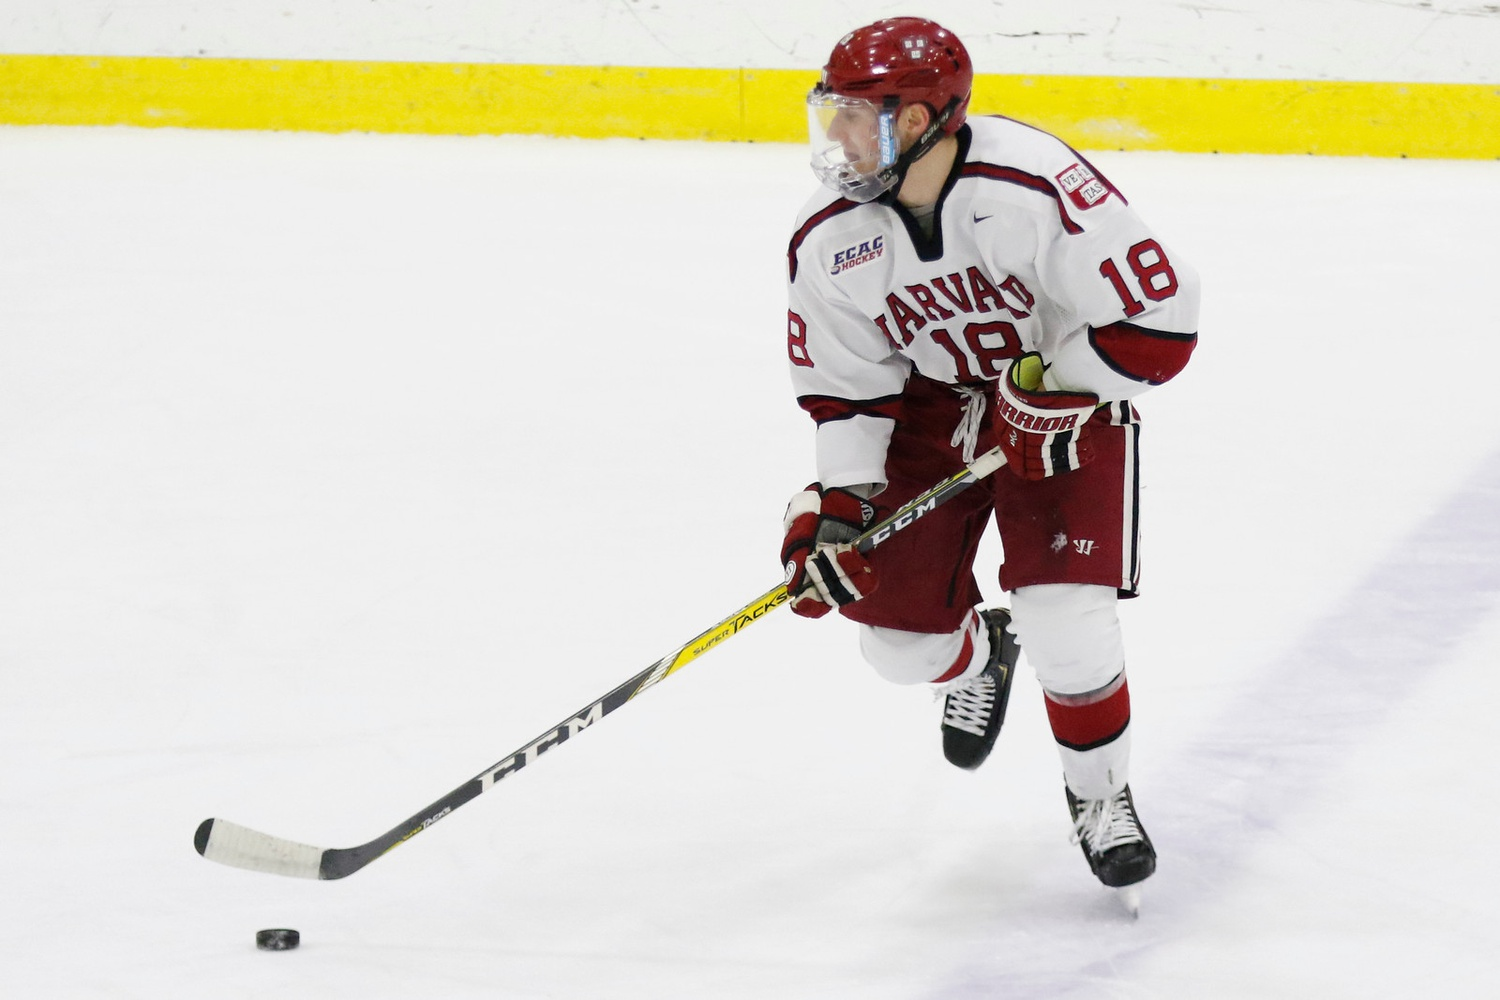 Defenseman Adam Fox is on the short list of college hockey's most elite players. This weekend, his pair of three-point outings showed why.